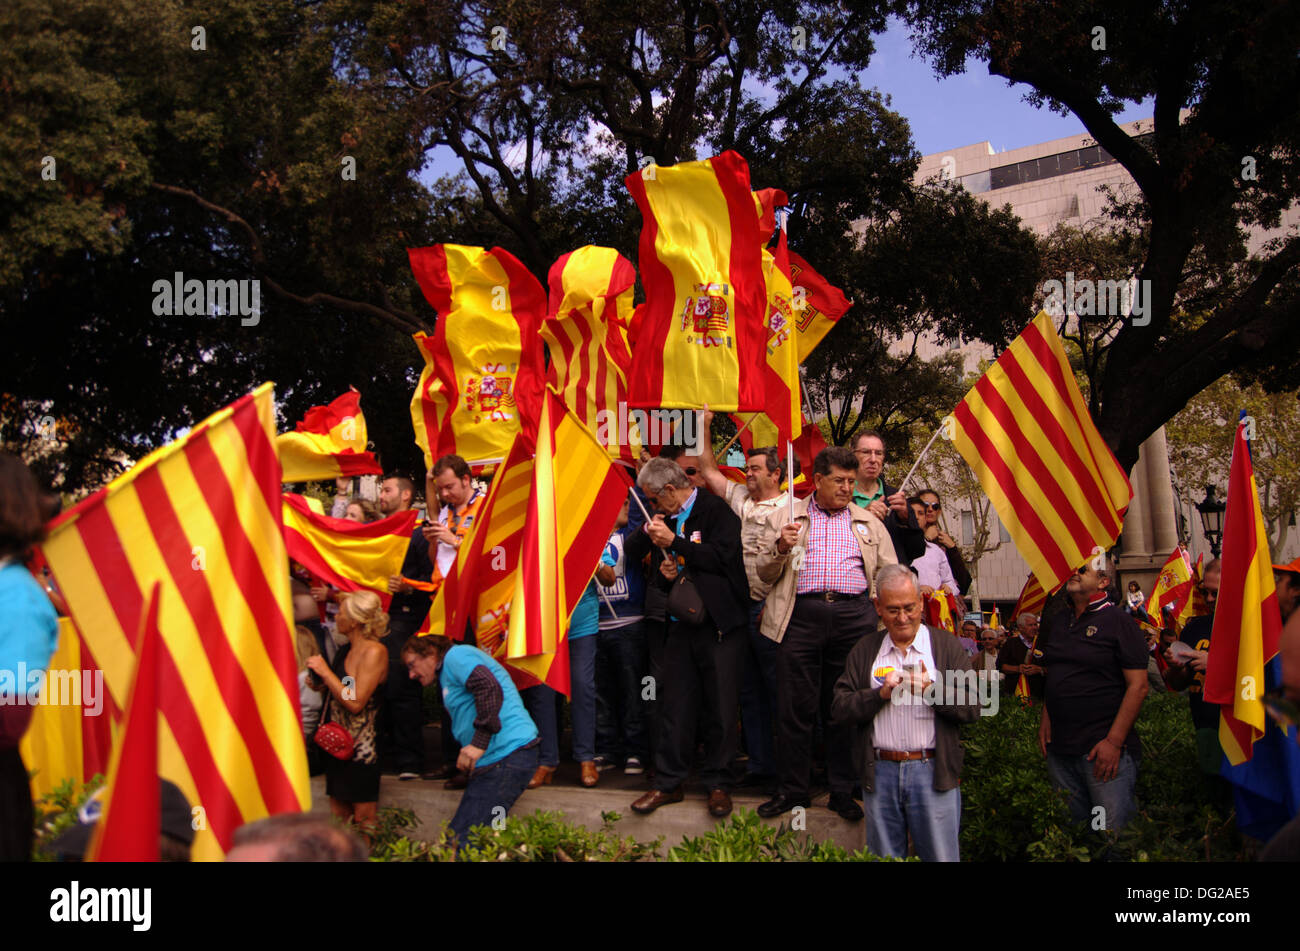 Barcelona, Spain. 12th Oct, 2013. Celebration of Columbus Day in Barcelona. Festive demonstration against the referendum for independence of Catalonia from the rest of Spain in the center of Barcelona. In the image, spanish & catalonian flags. Credit:  Fco Javier Rivas Martín/Alamy Live News - Stock Image